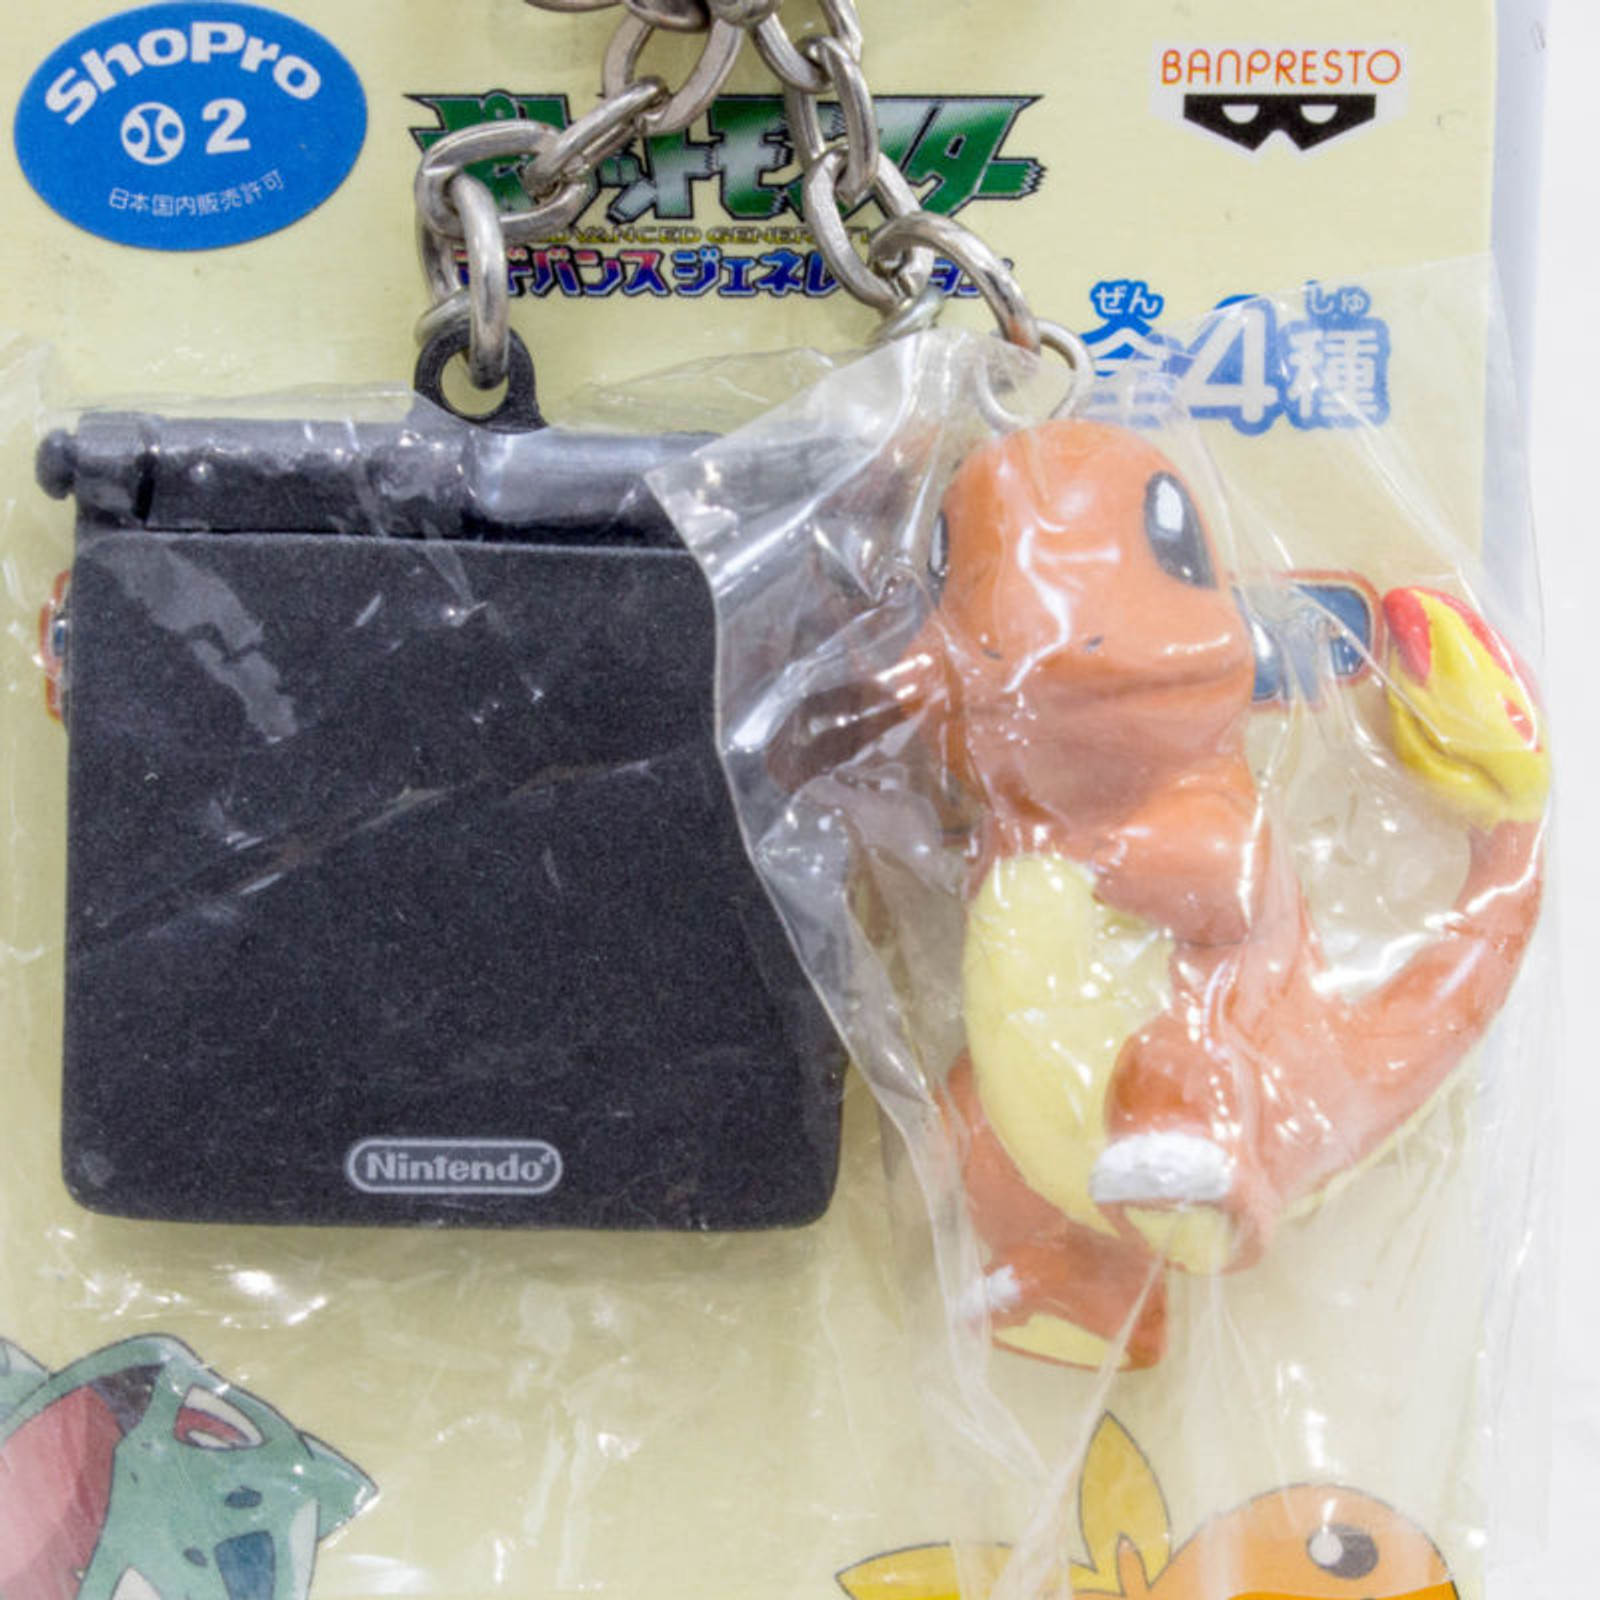 Pokemon Hitokage + Nintendo GAME BOY Advance SP Miniature Figure Key Chain